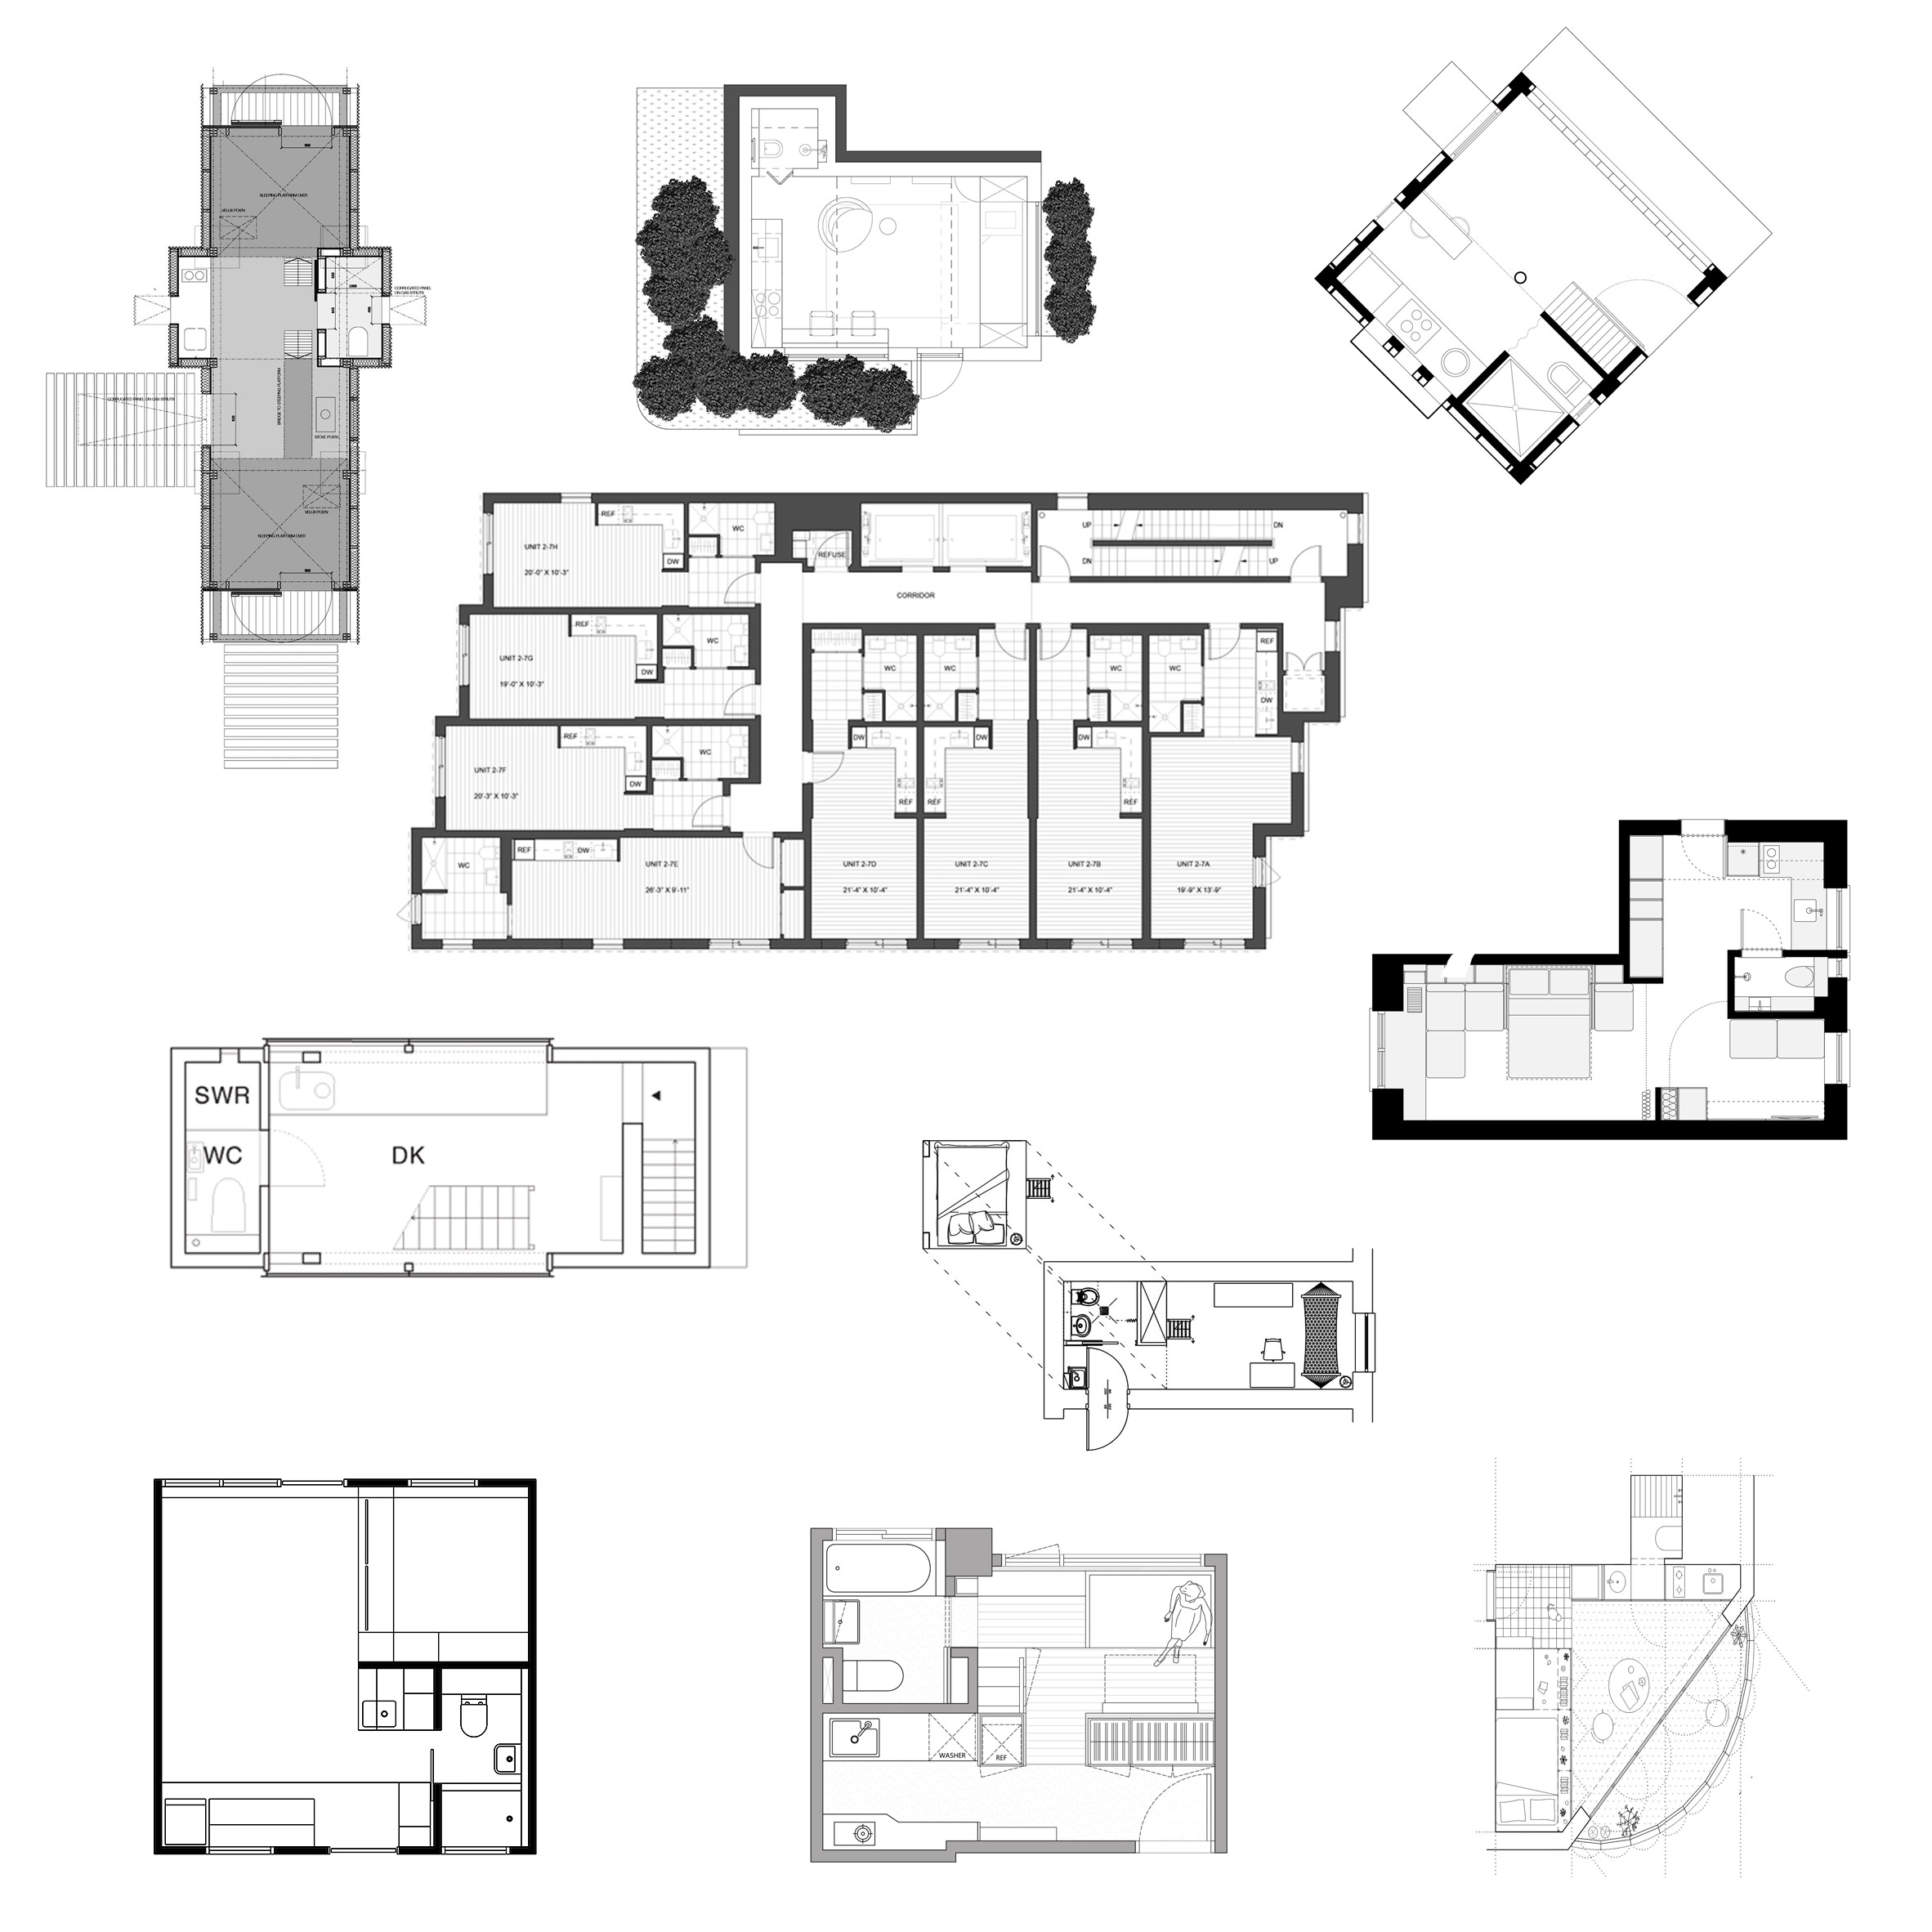 12 micro home floor plans designed to save space